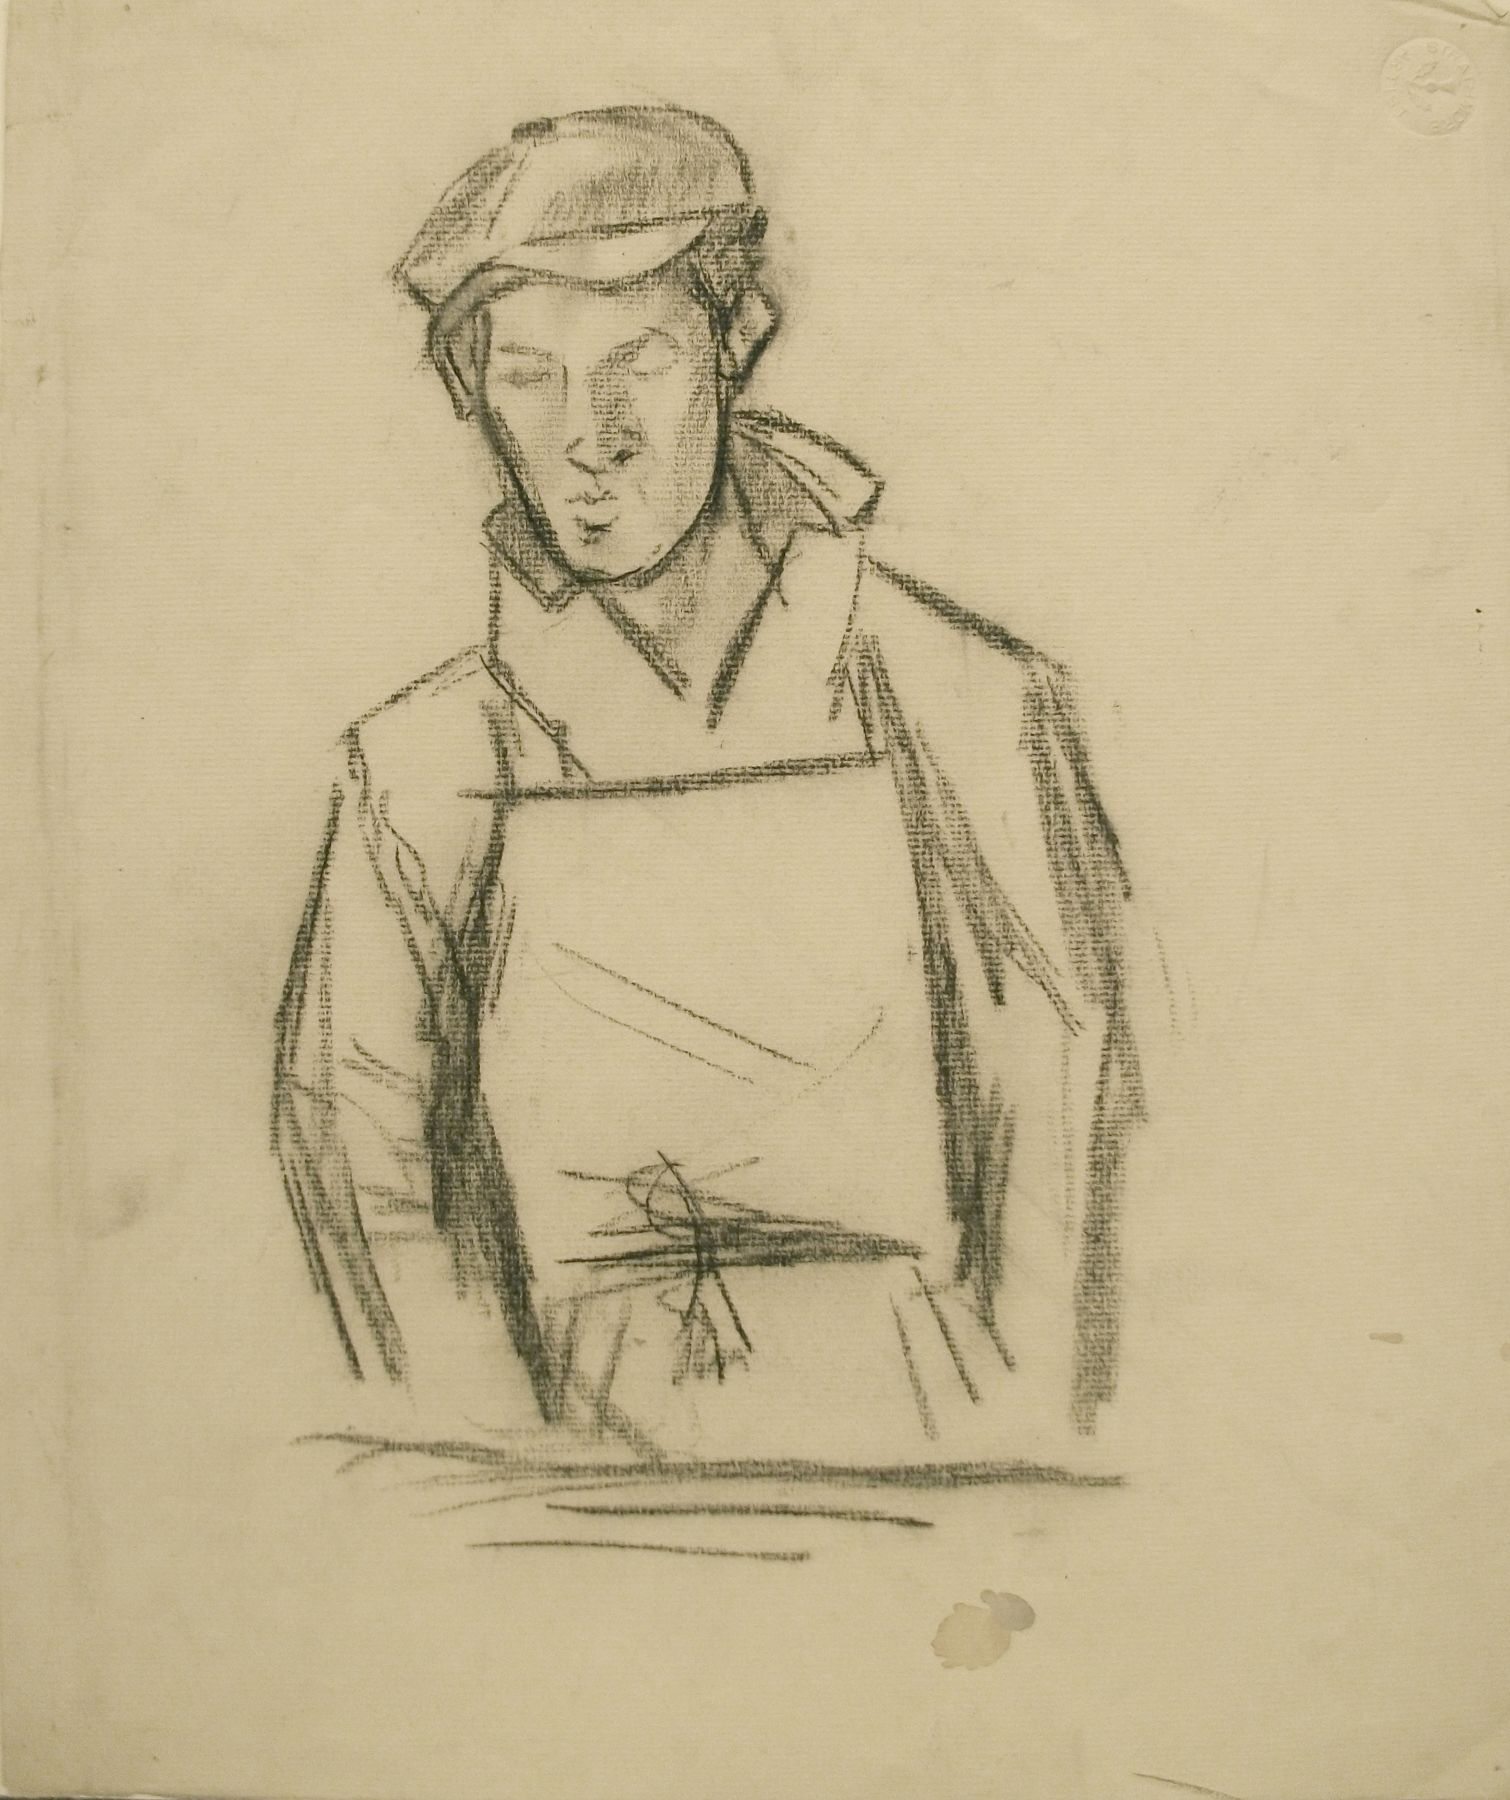 Untitled (Workman), c. 1935, Charcoal on paper